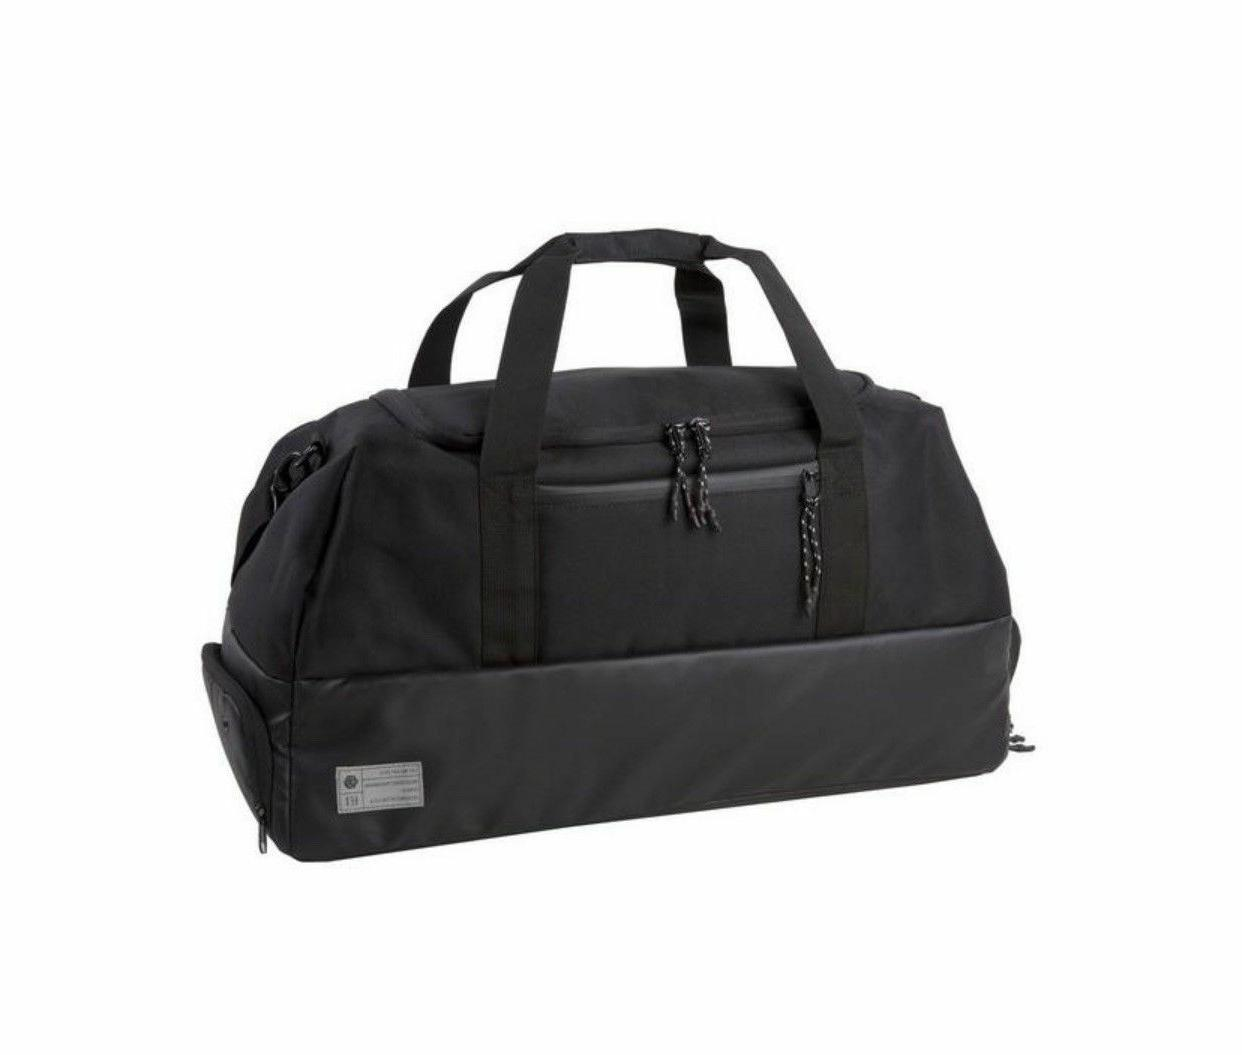 New HEX Duffle Bag Black Size Carry